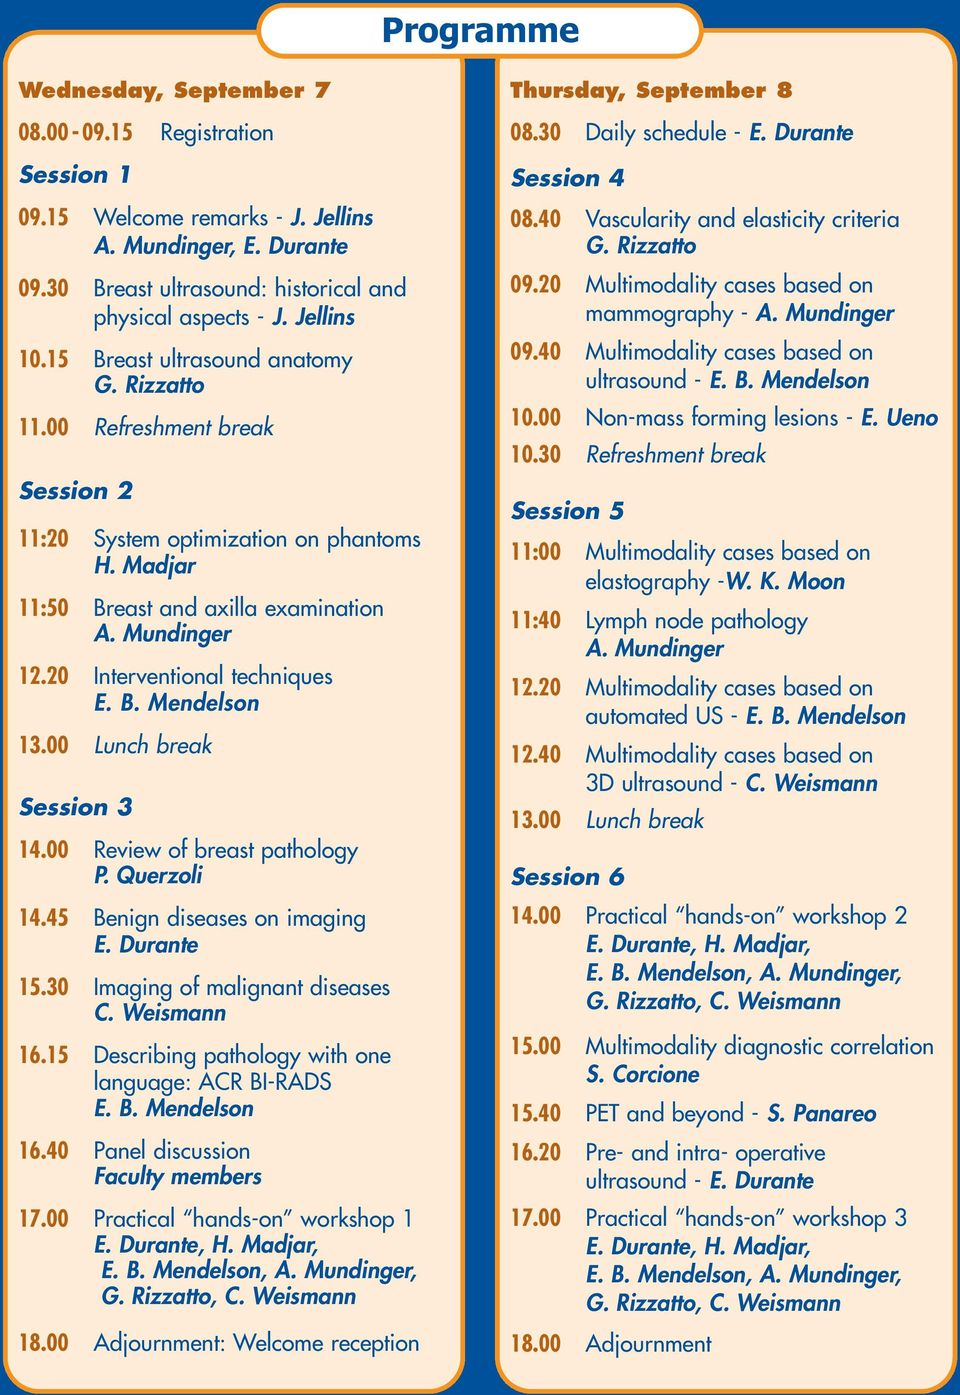 20 Interventional techniques E. B. Mendelson 13.00 Lunch break Session 3 14.00 Review of breast pathology P. Querzoli 14.45 Benign diseases on imaging E. Durante 15.30 Imaging of malignant diseases C.